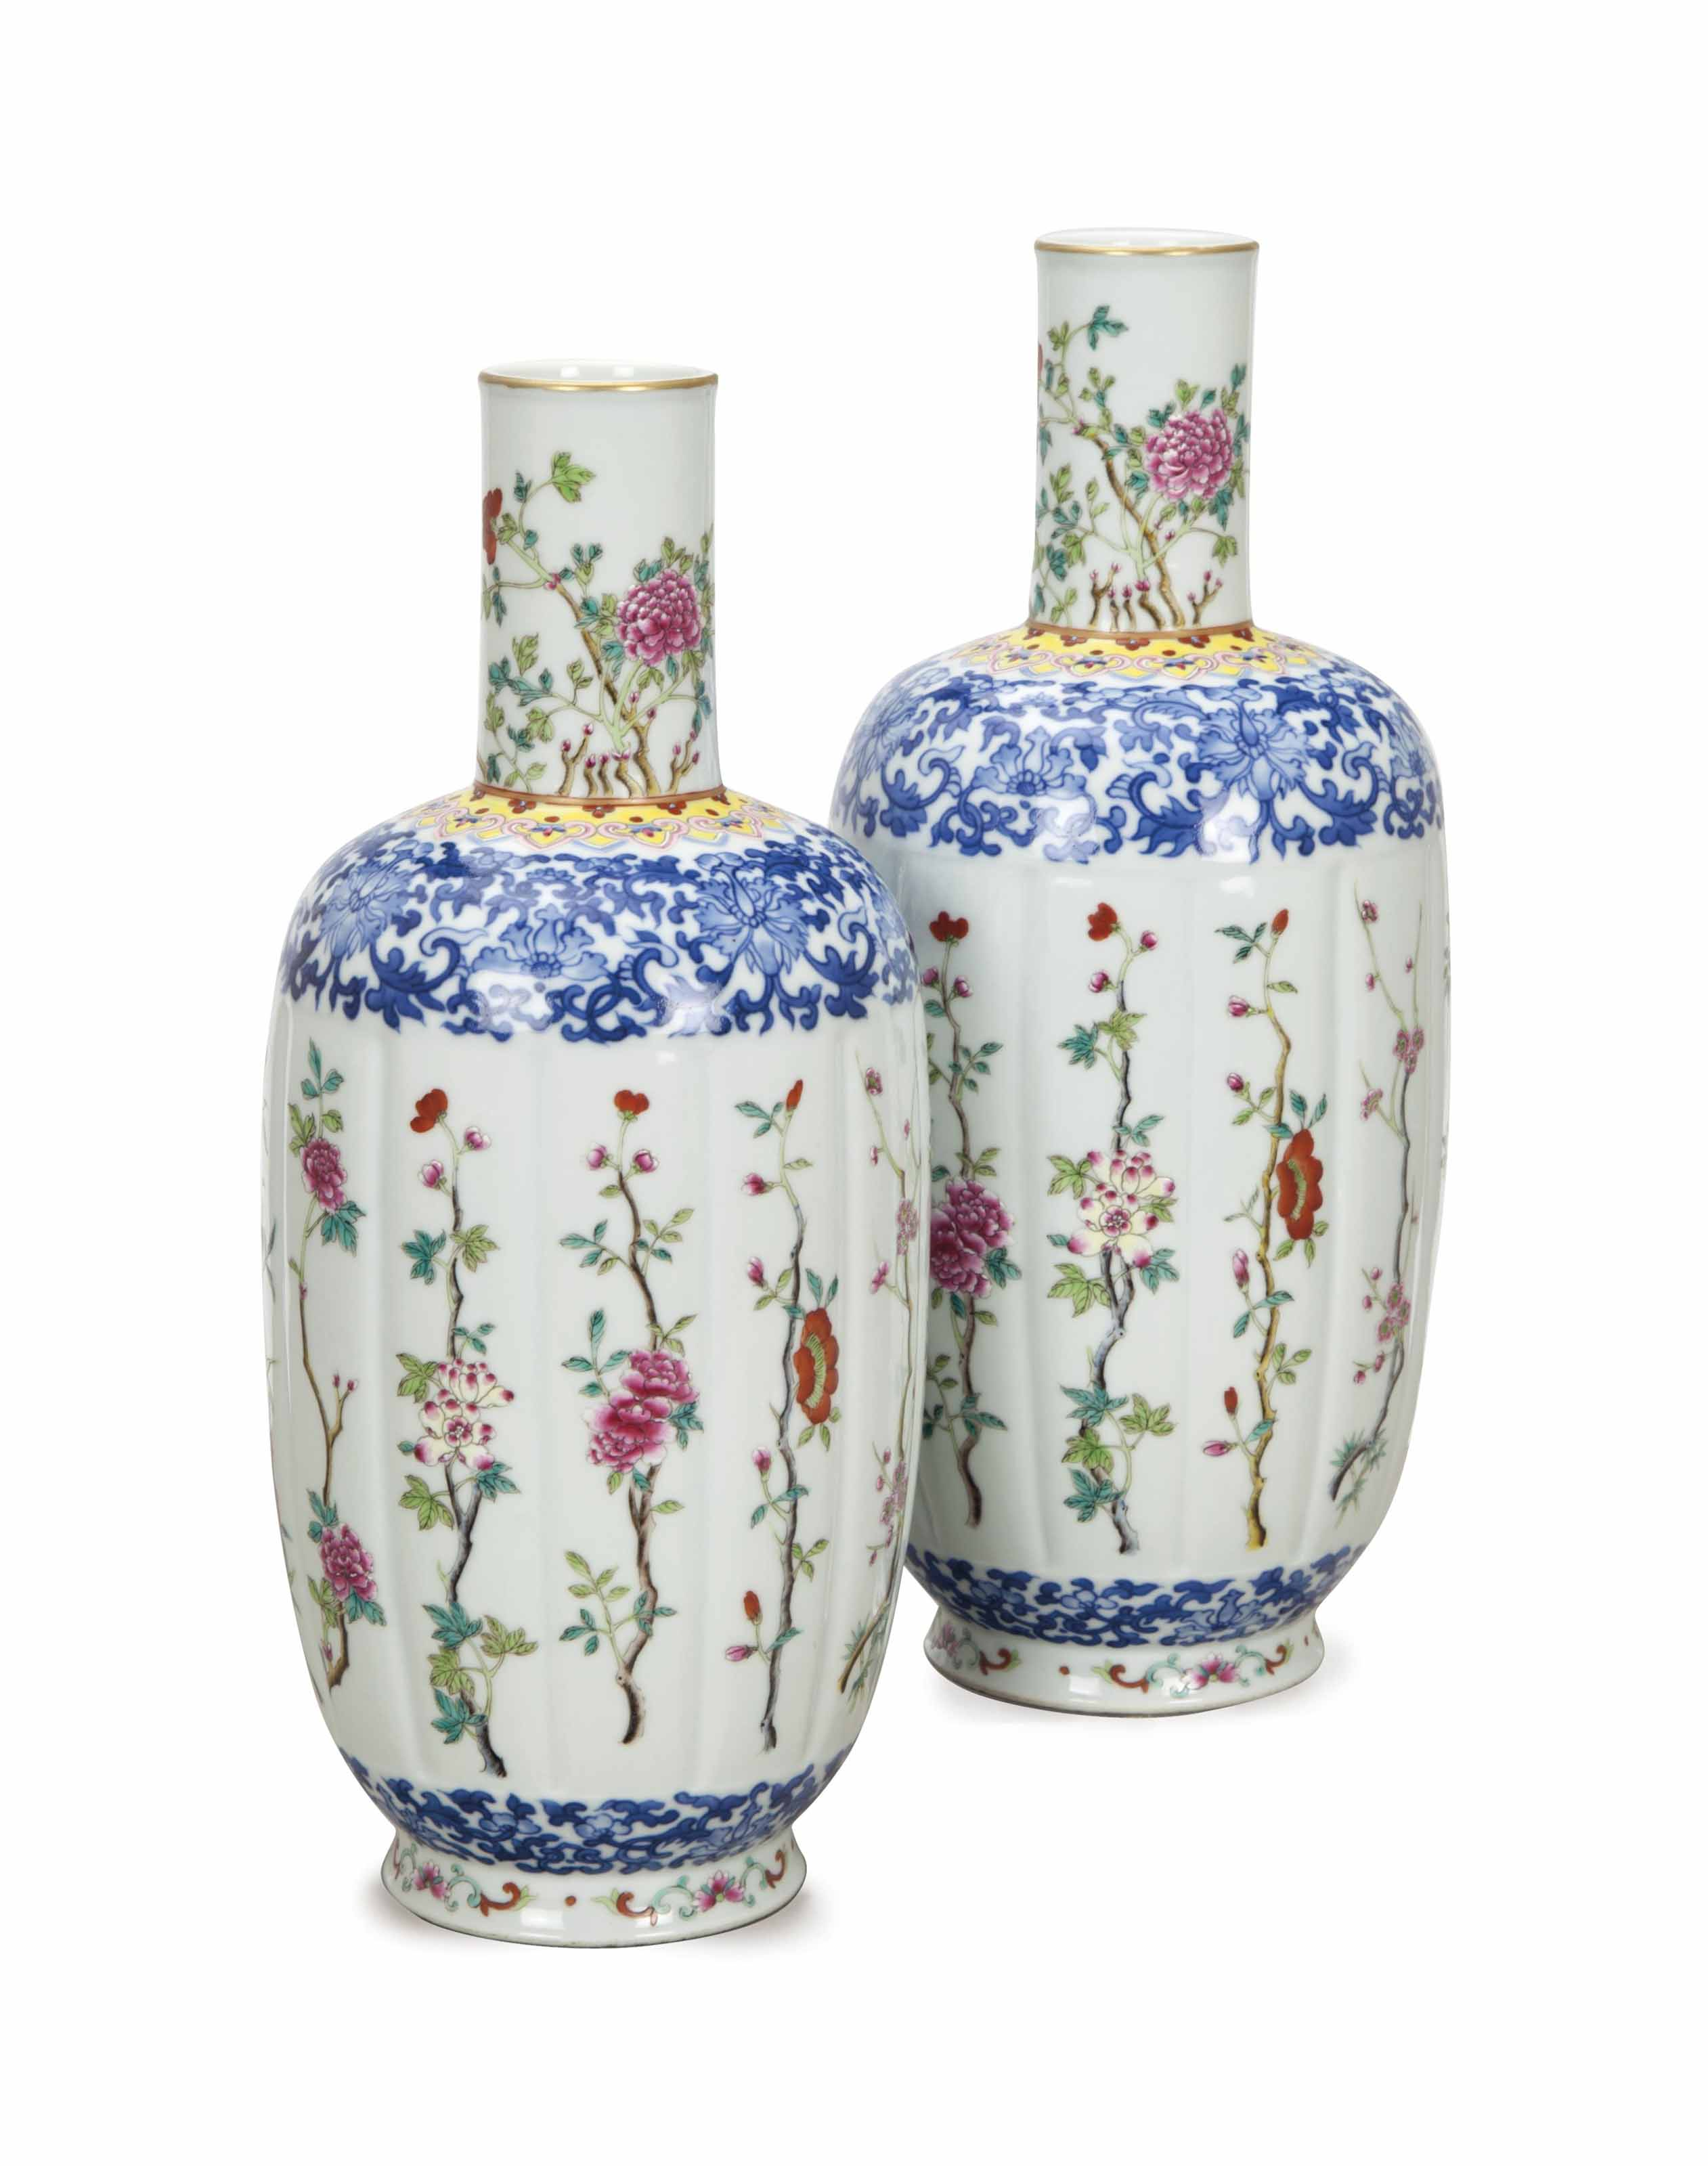 A PAIR OF CHINESE LOBED BOTTLE